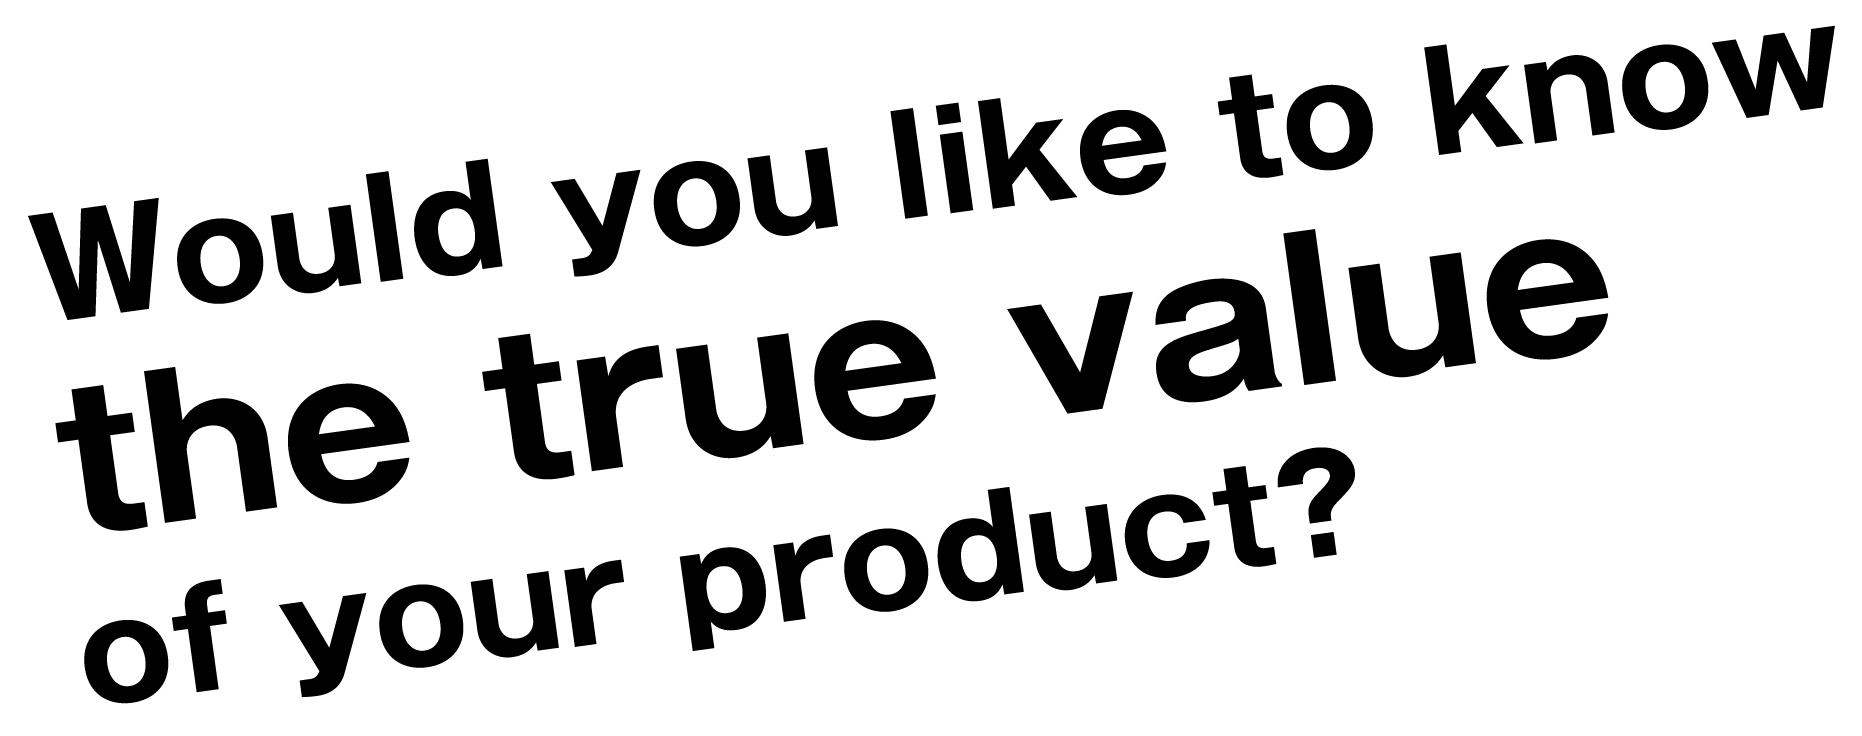 Would you like to know the true value of your product?